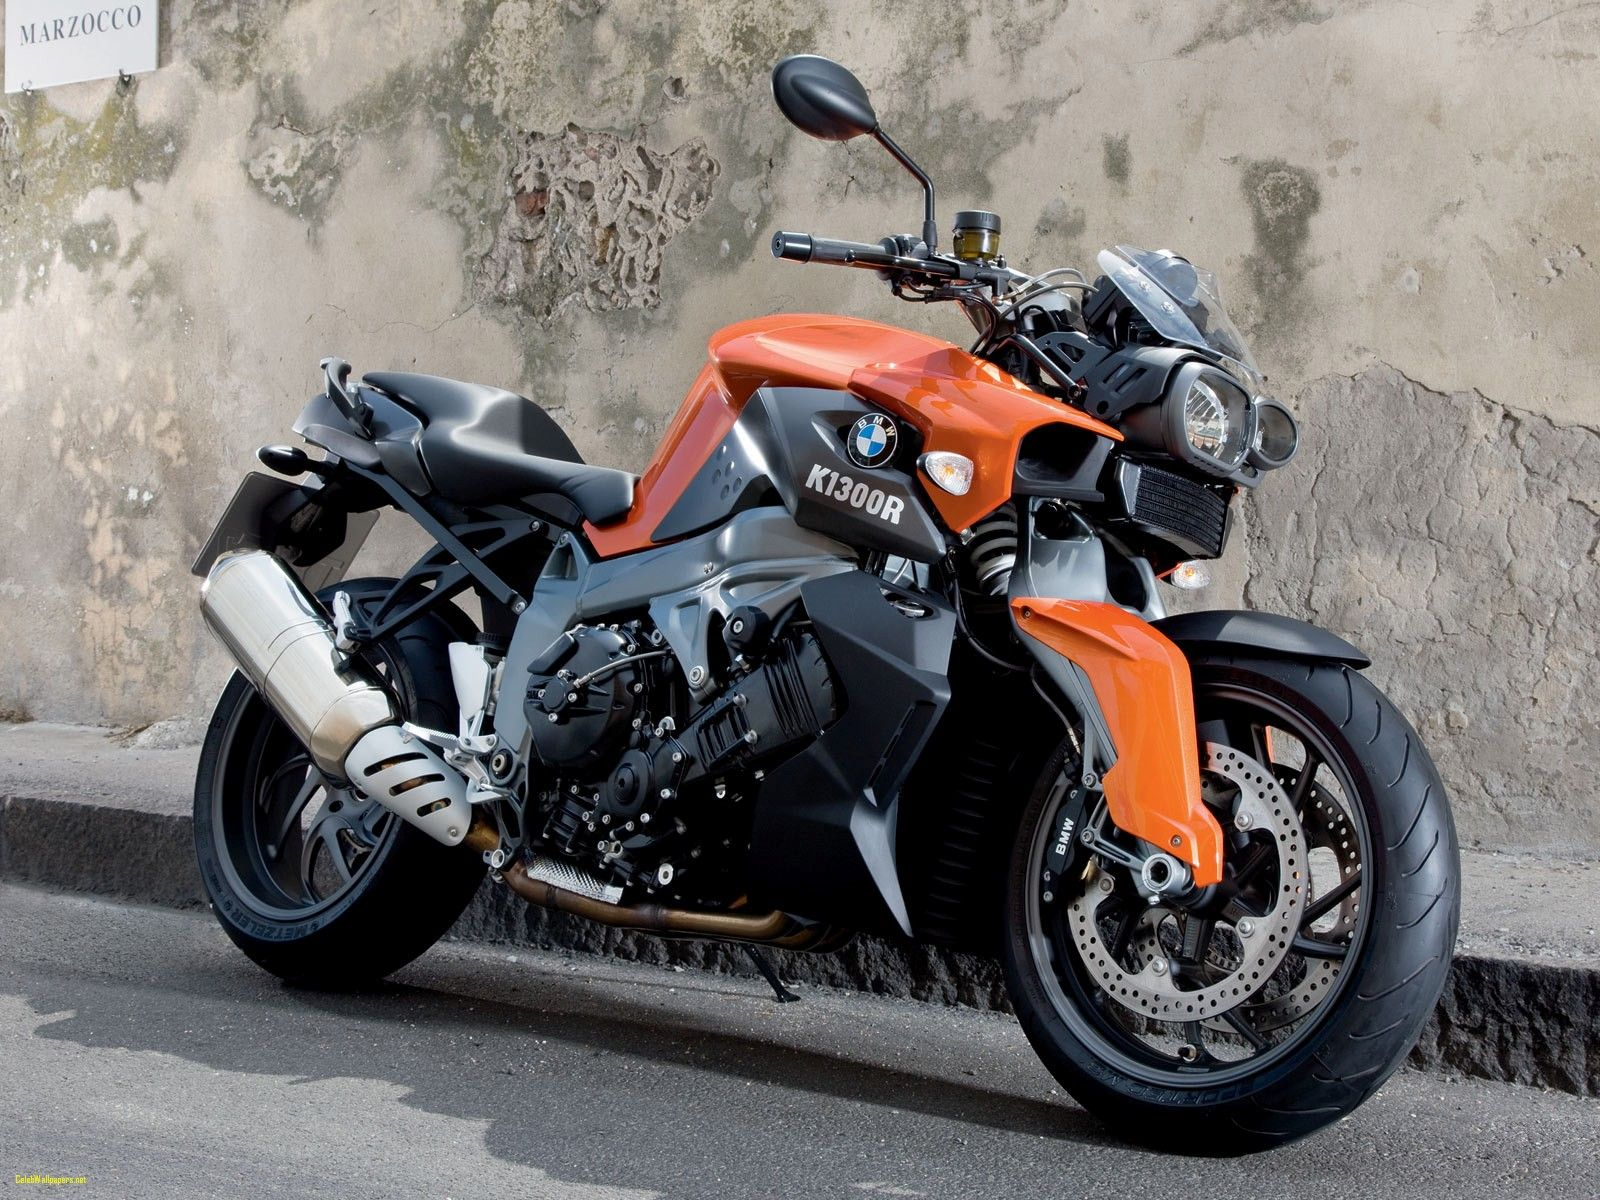 Bmw Motorcycle Wallpapers Top Free Bmw Motorcycle